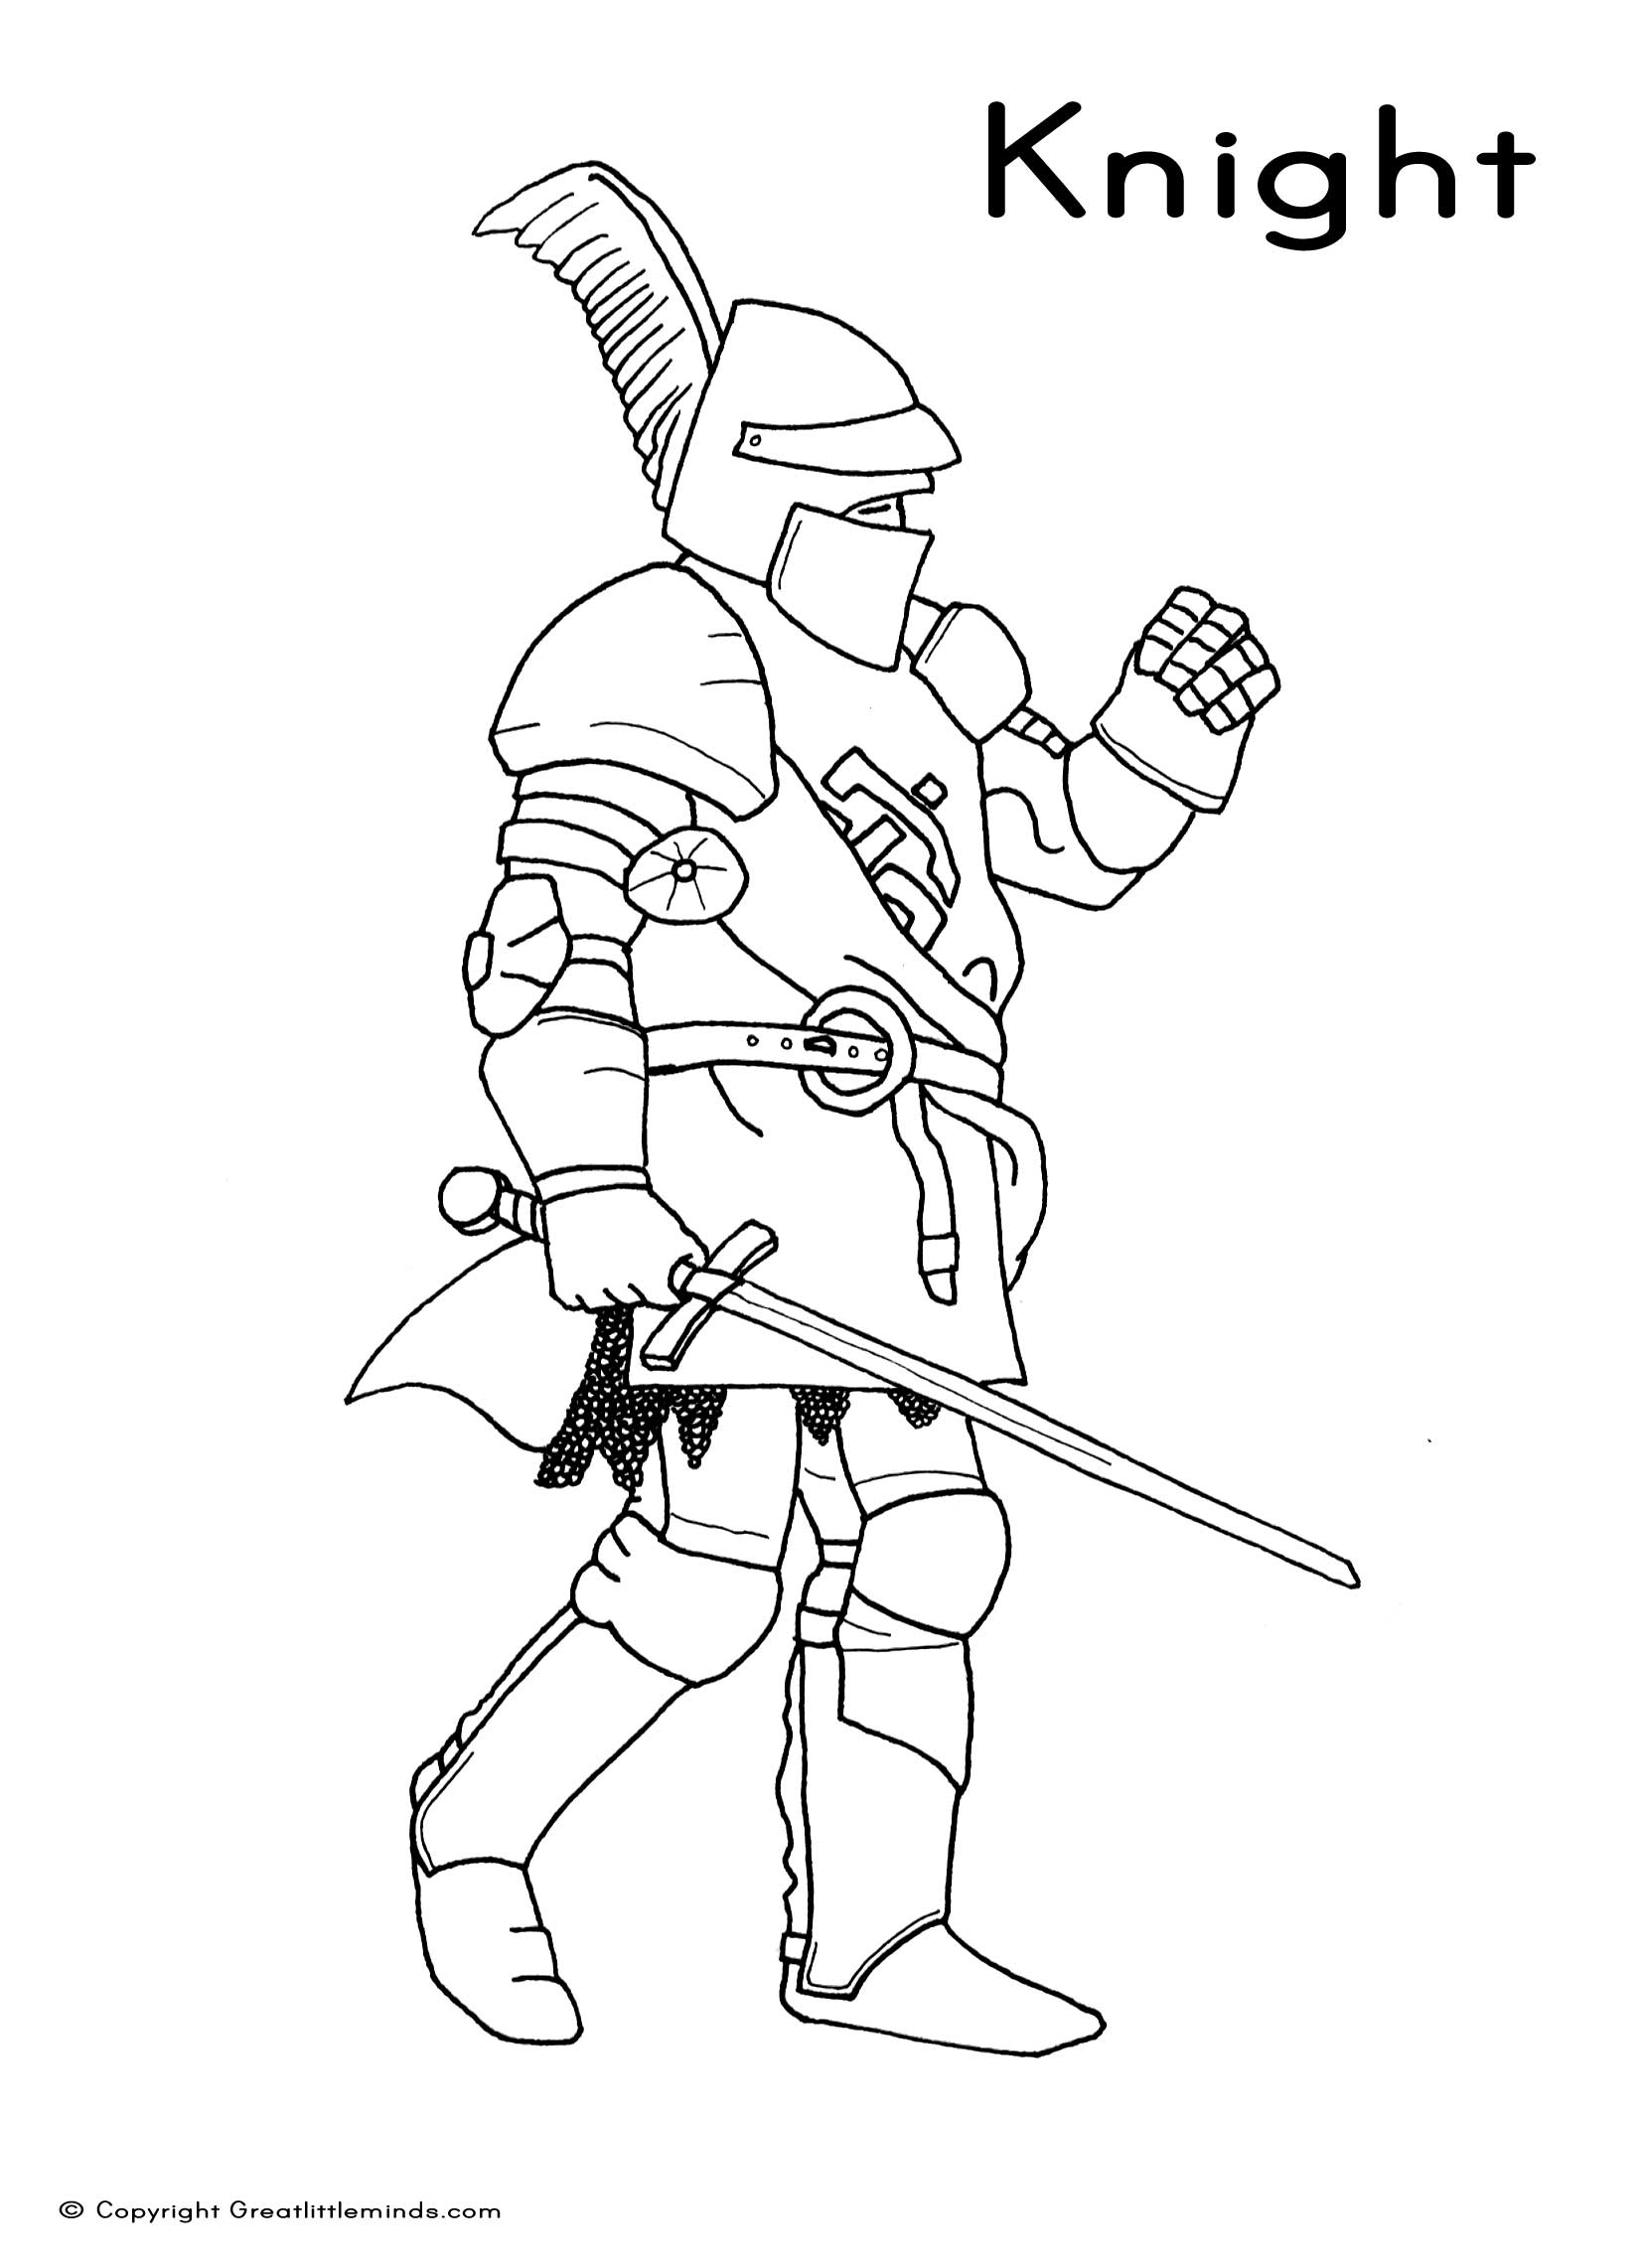 printable knight coloring pages - photo#36